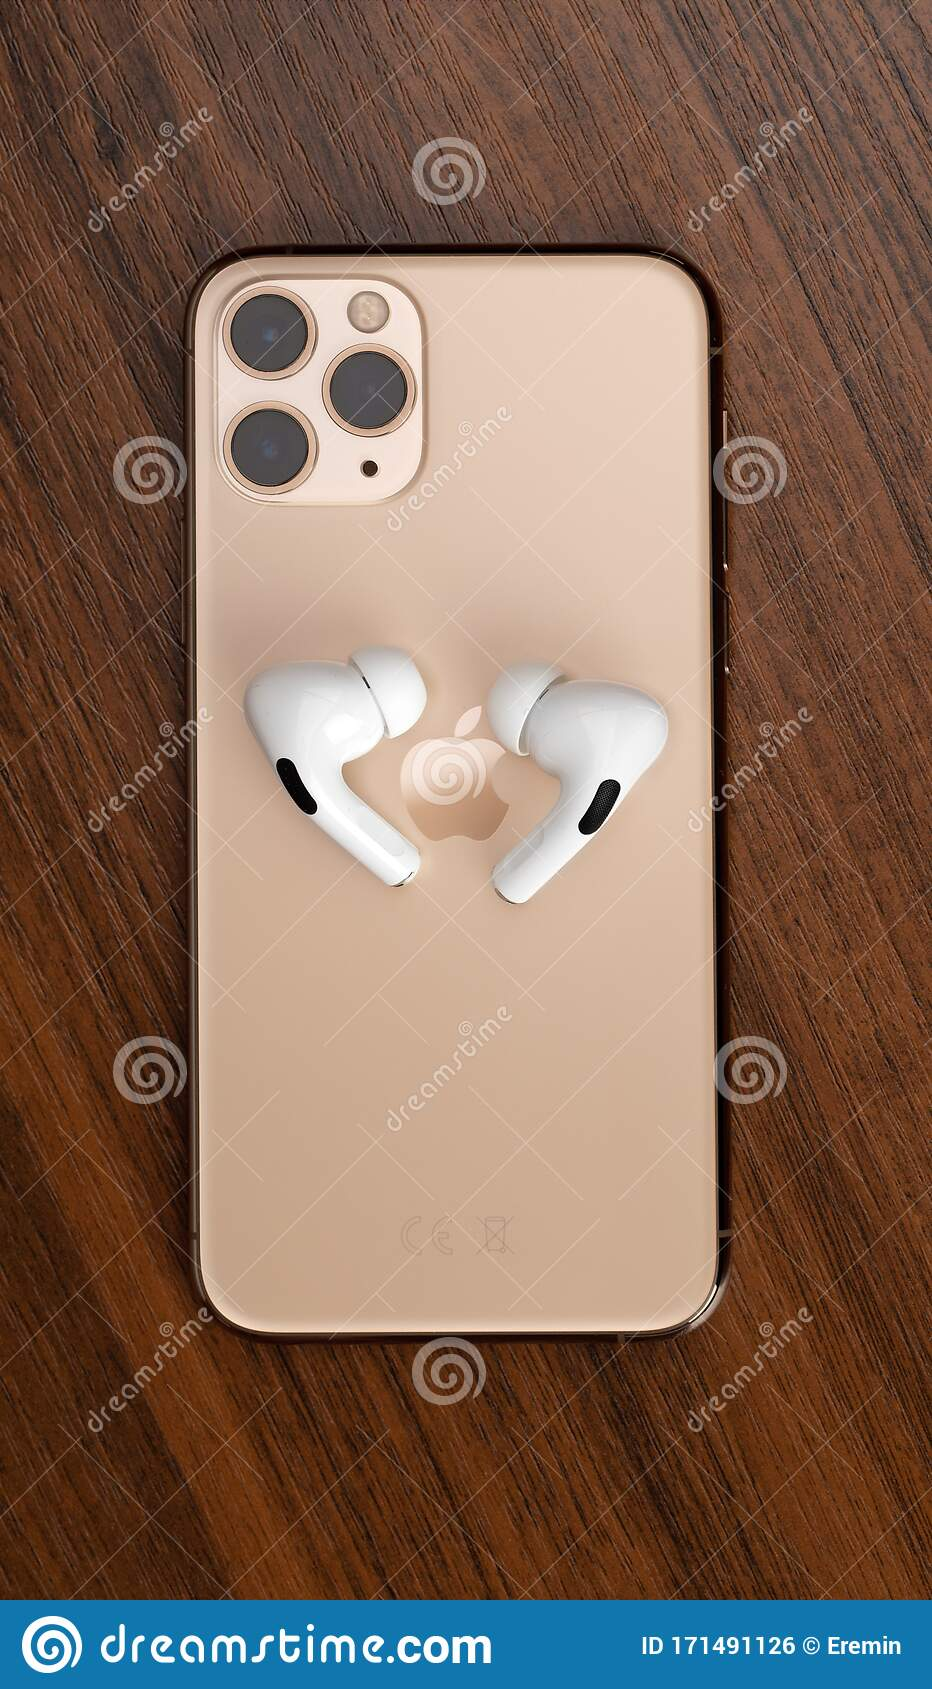 Apple Airpods Pro And Iphone 11 Pro On A Wooden Table Wireless Headphones And Smartphone Editorial Photo Image Of Headphones Cellular 171491126